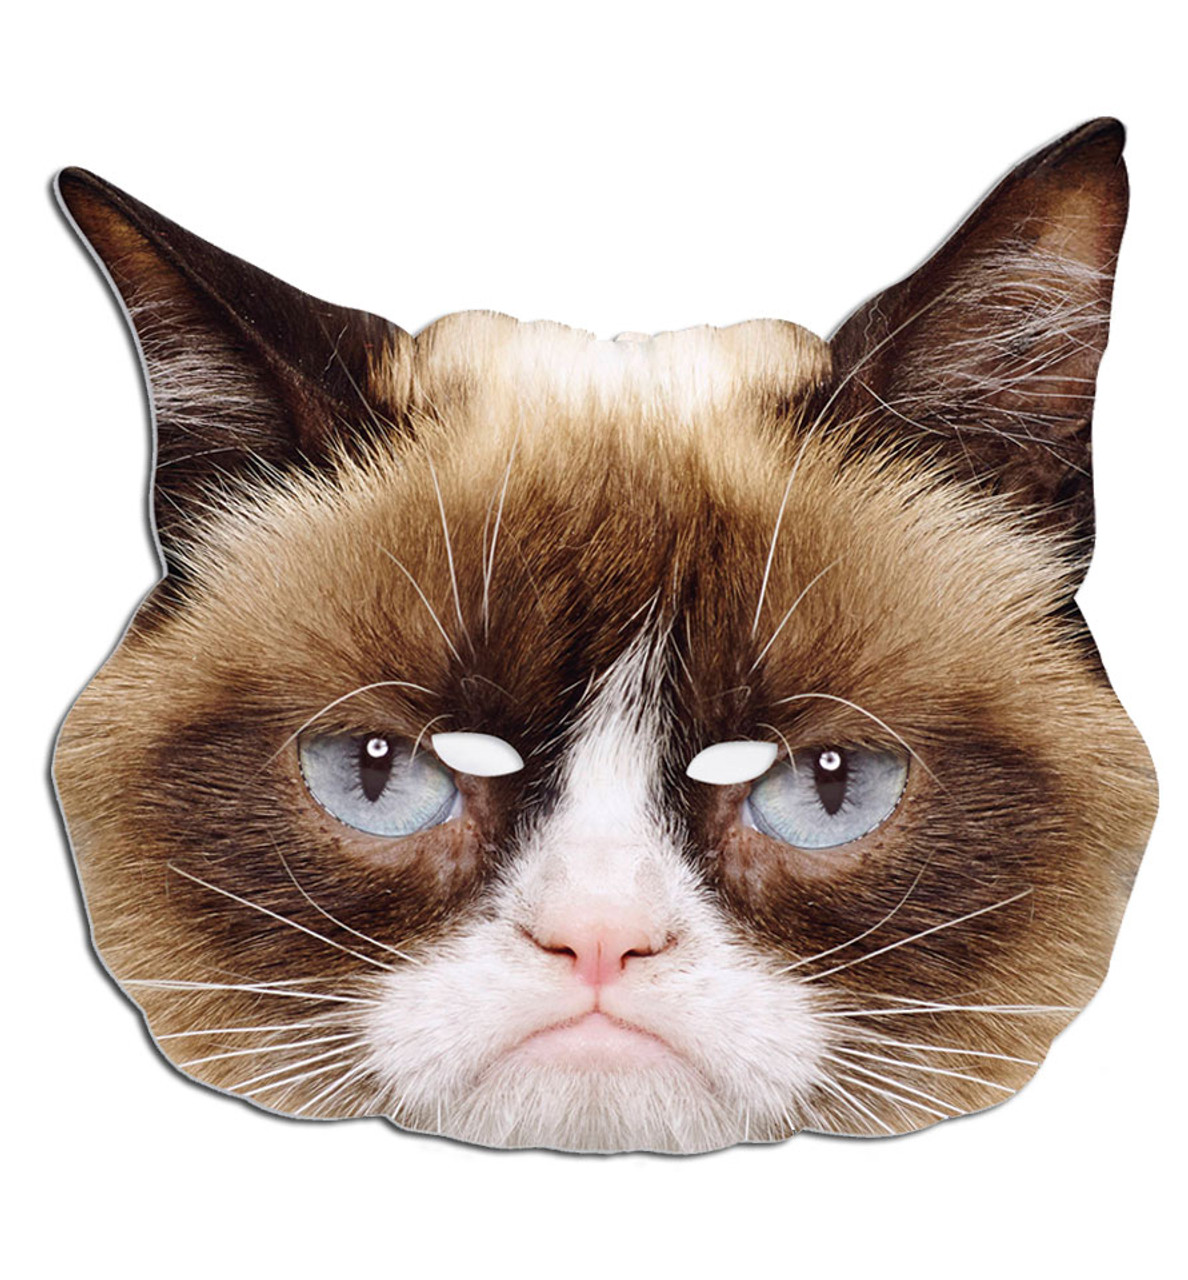 Grumpy Cat Single Card Party Face Mask. In Stock Now with Free UK ... 05bbd8e0a391